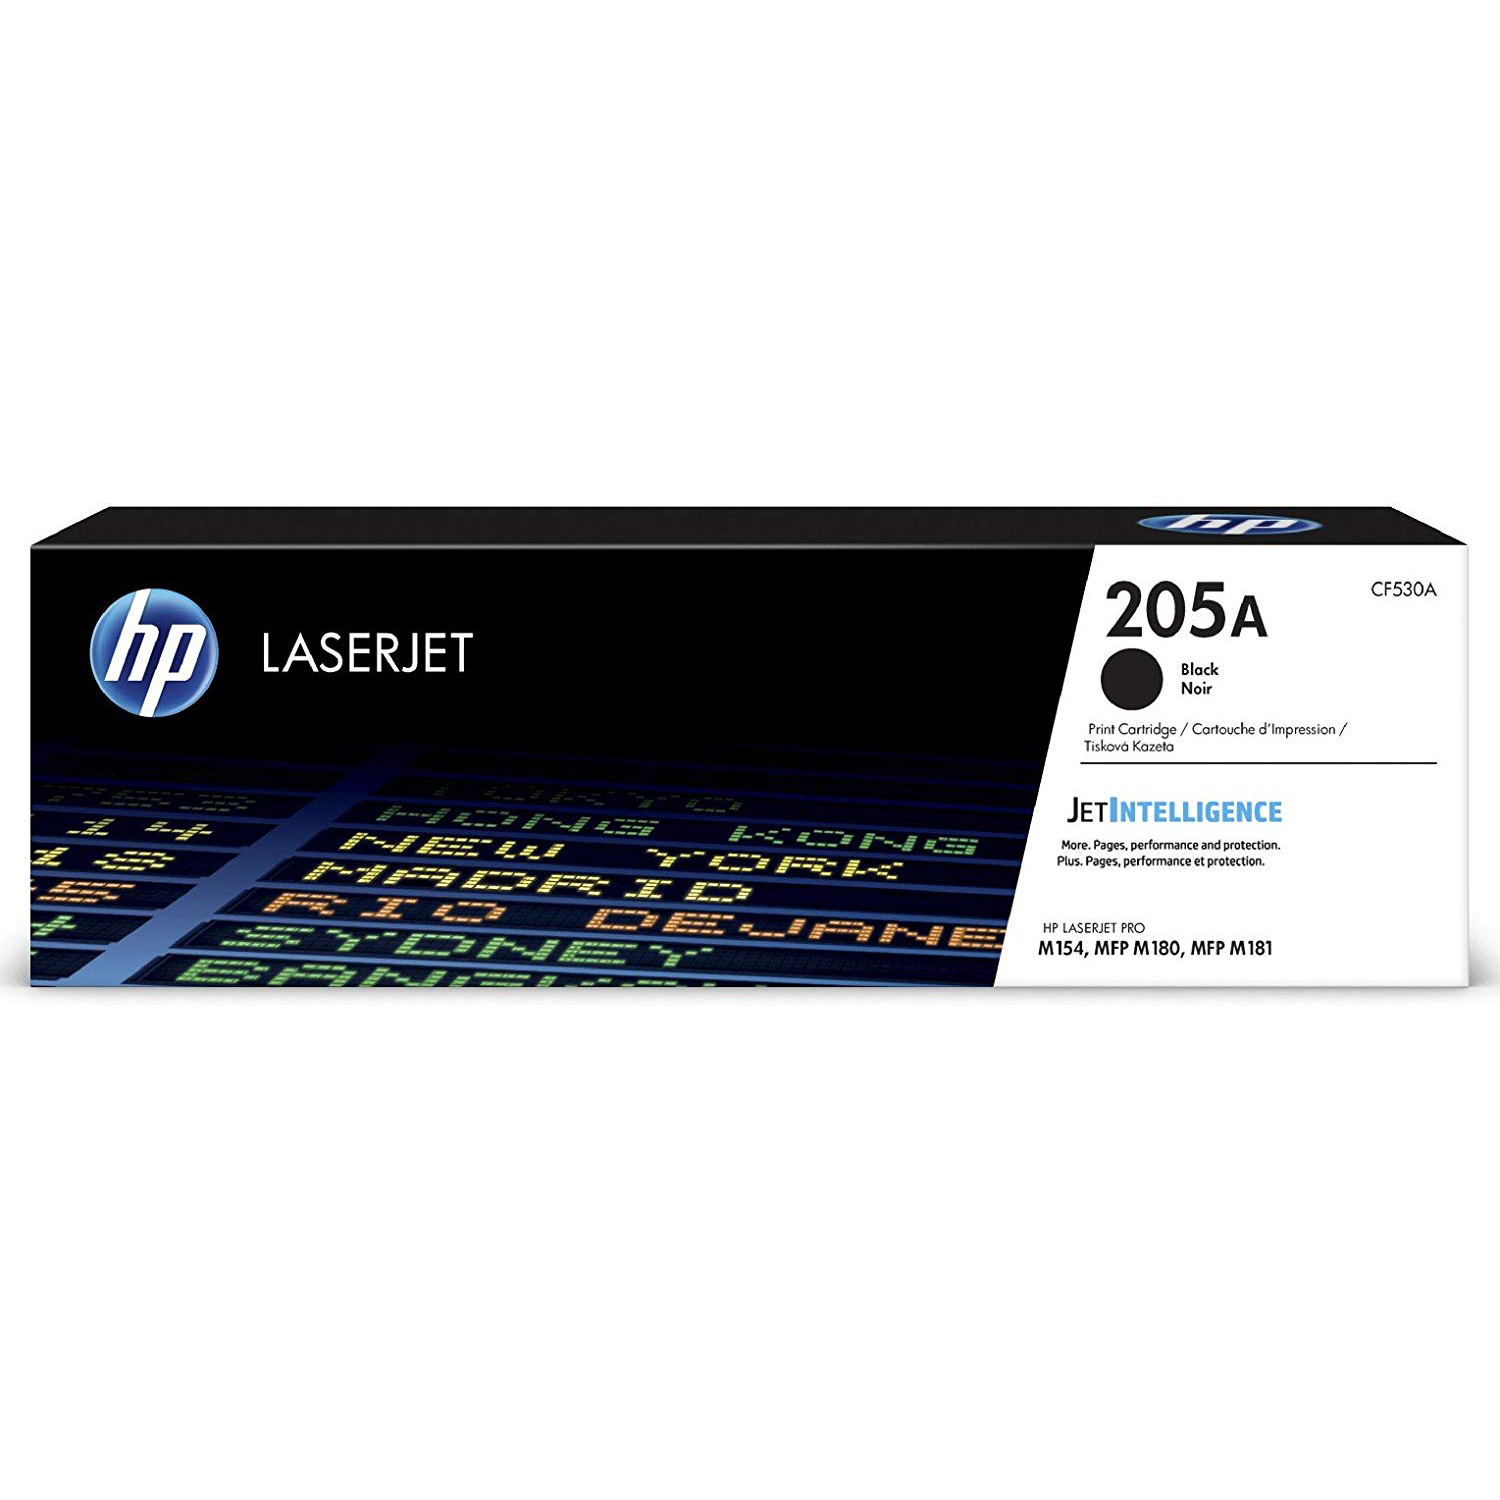 HP 205A (CF530A) Toner Cartridge - Black